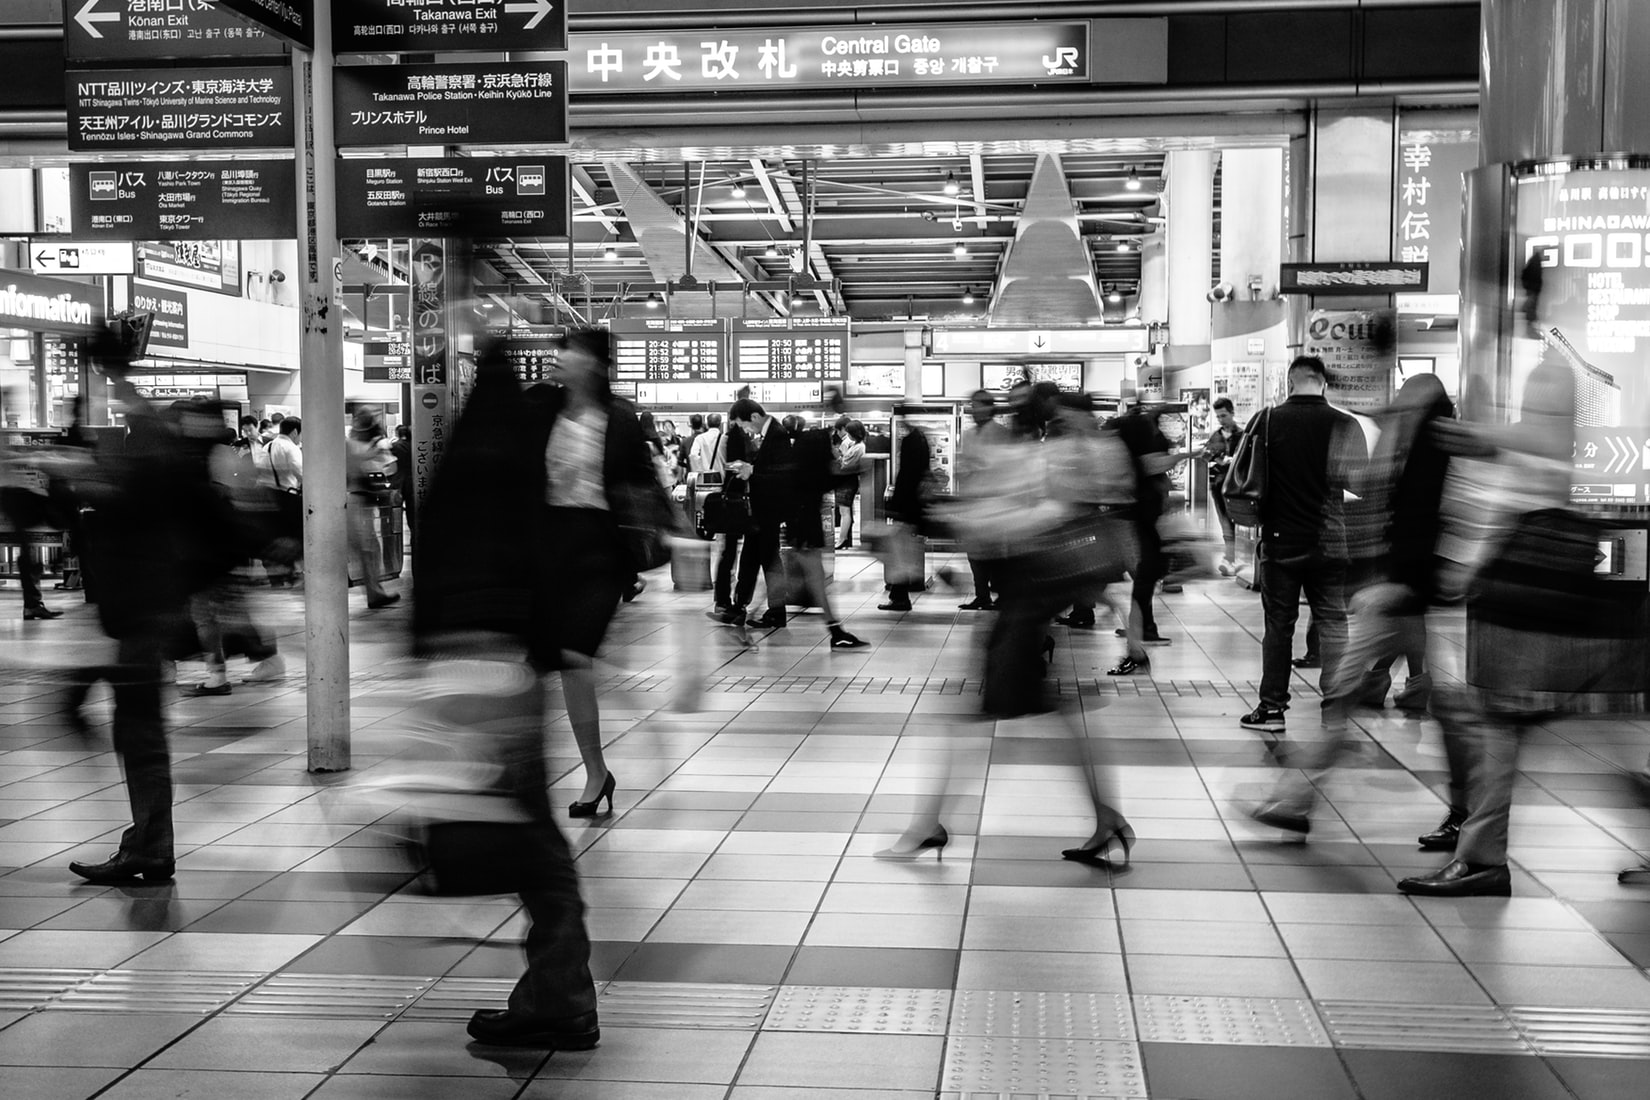 Time-lapse photography of people rushing through a subway station